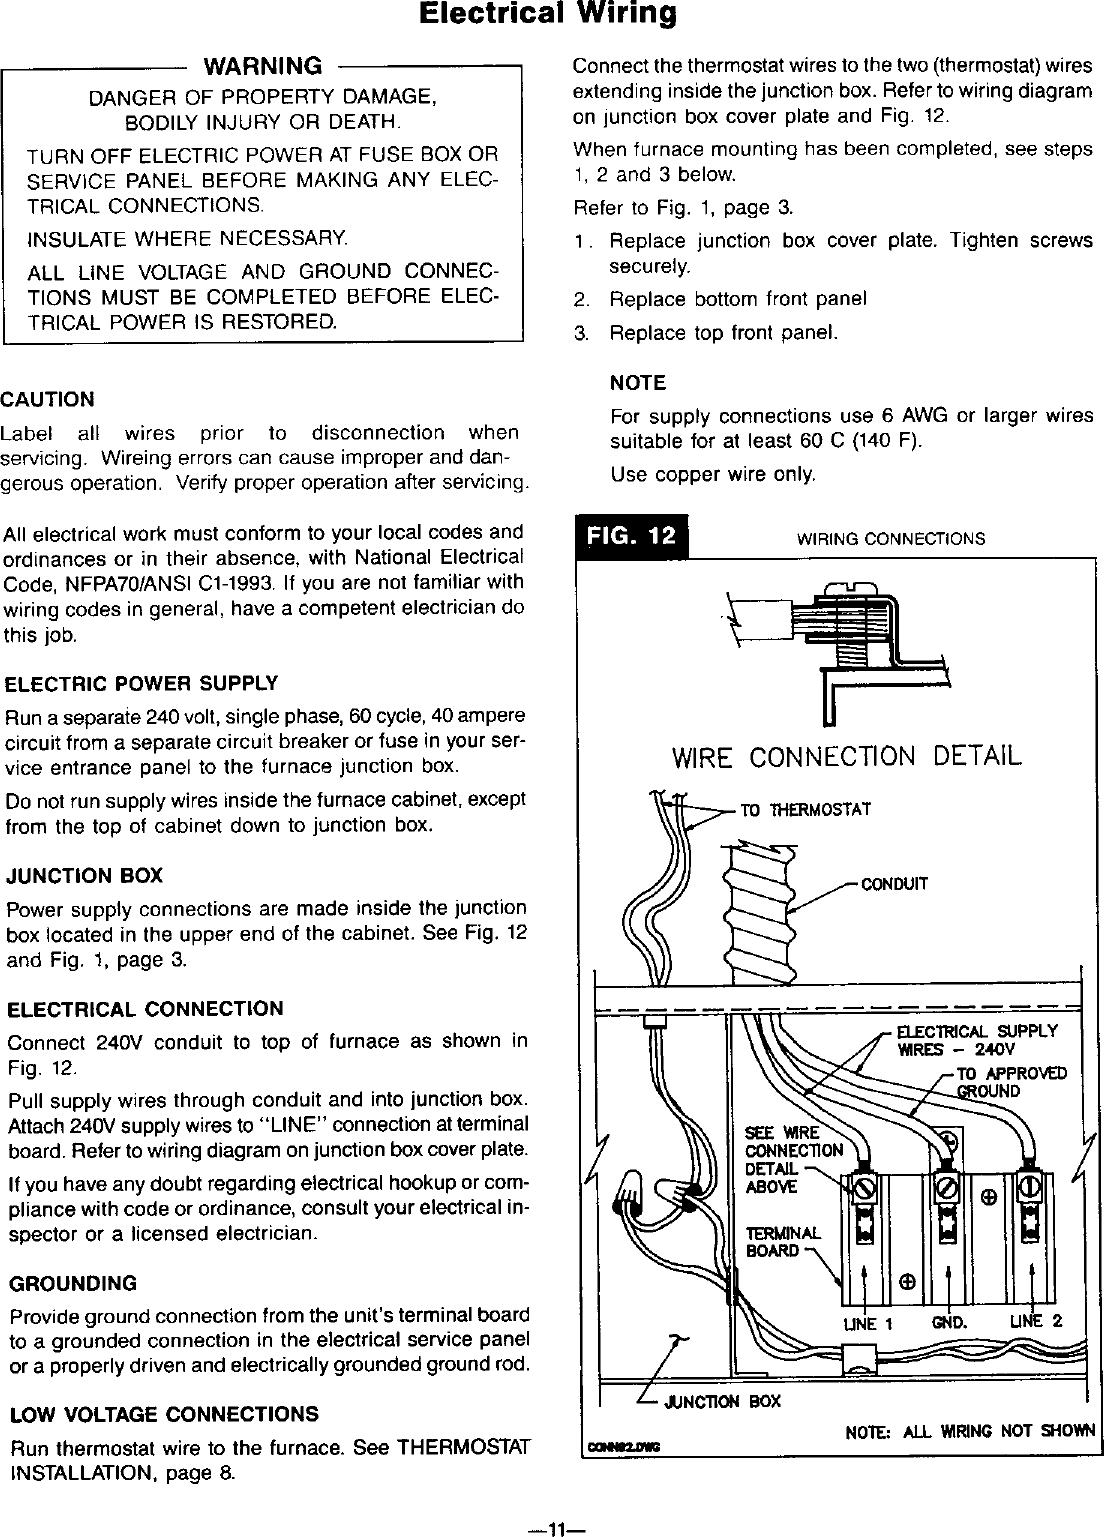 Furnace Wiring Junction Box - Wiring Diagrams Log on